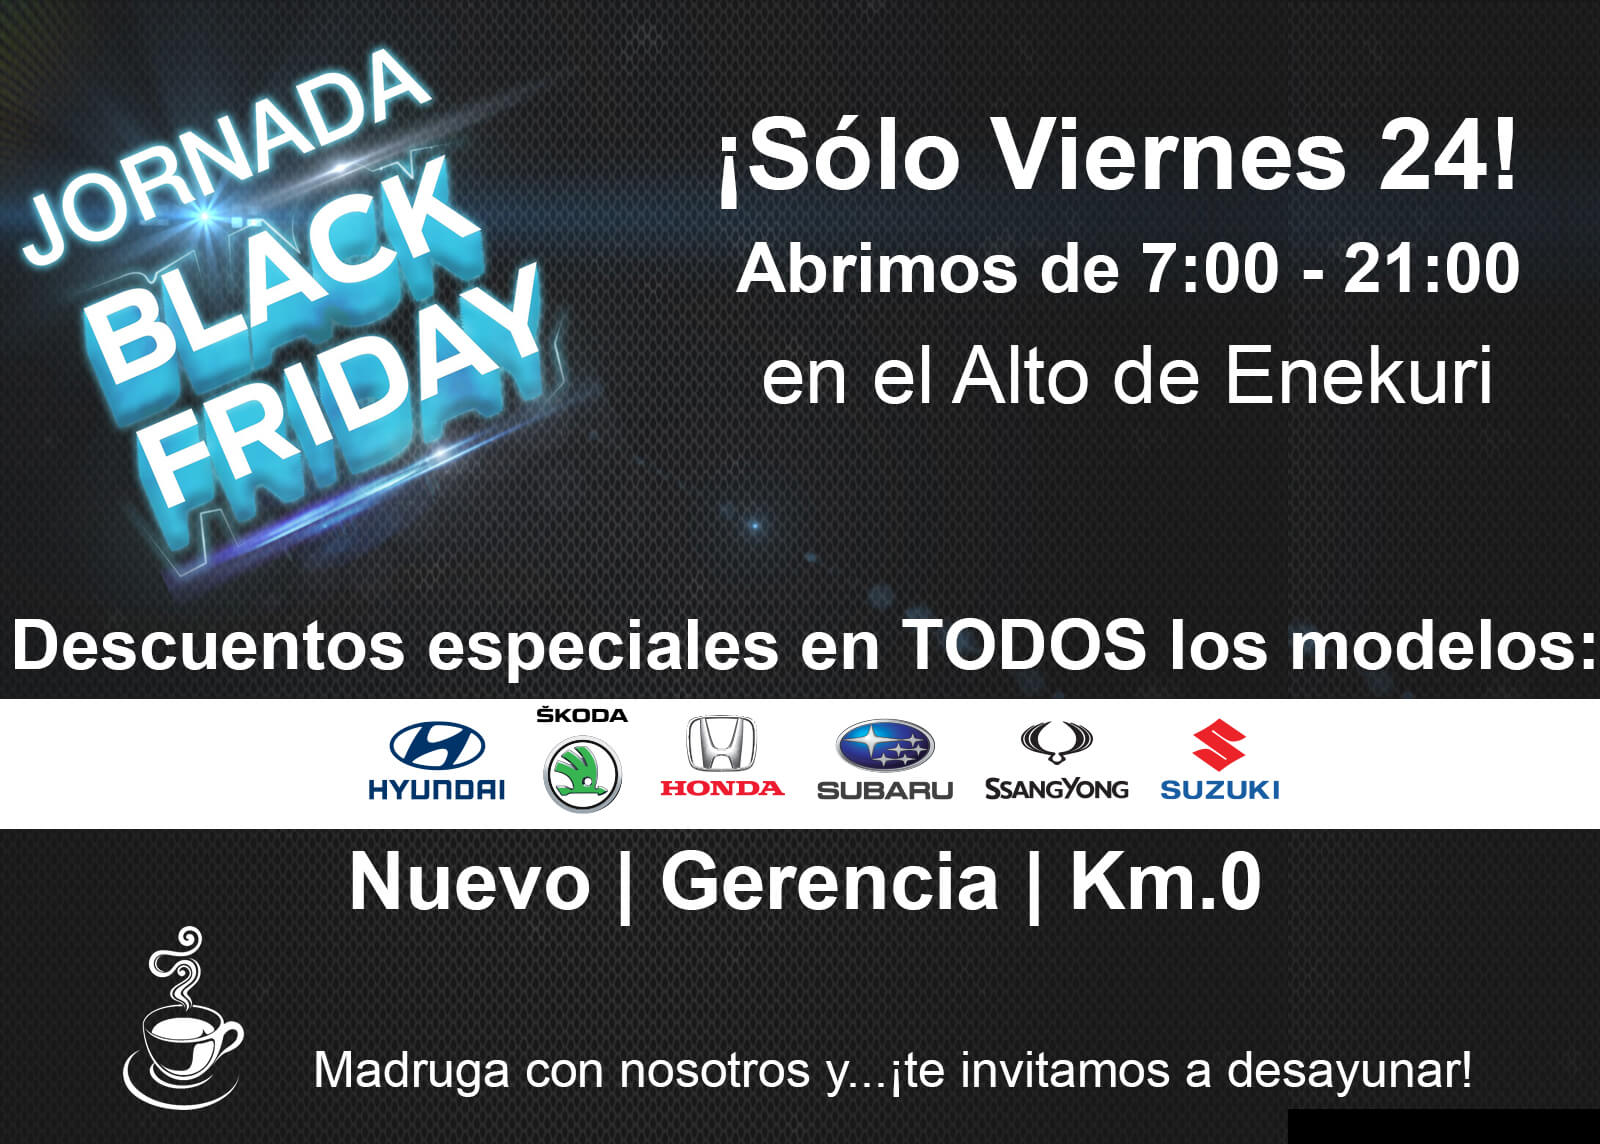 Black Friday Viernes 24 ofertas exclusivas